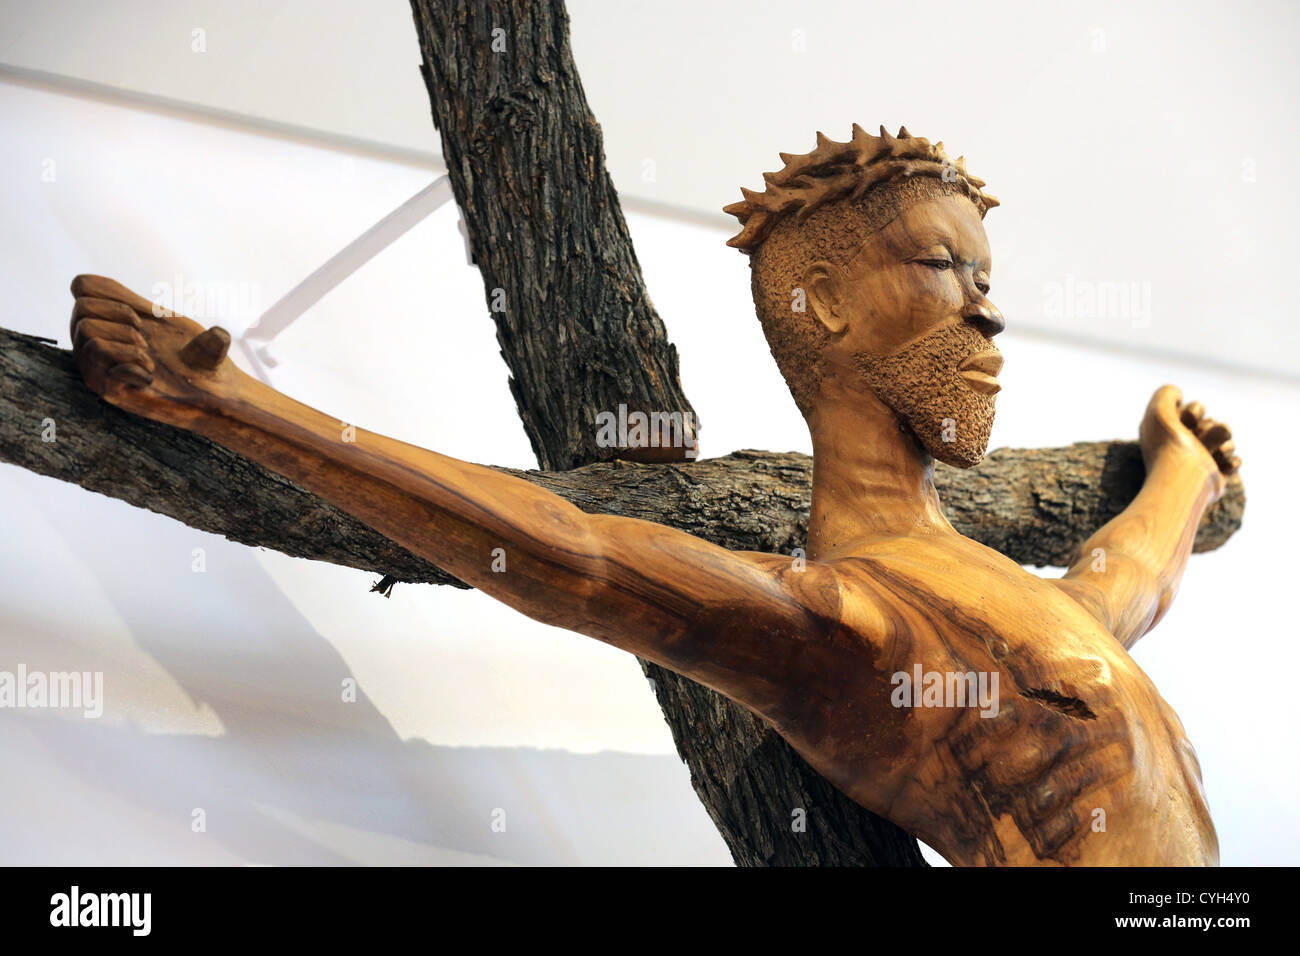 a wooden african statue of jesus christ on the cross with crown of